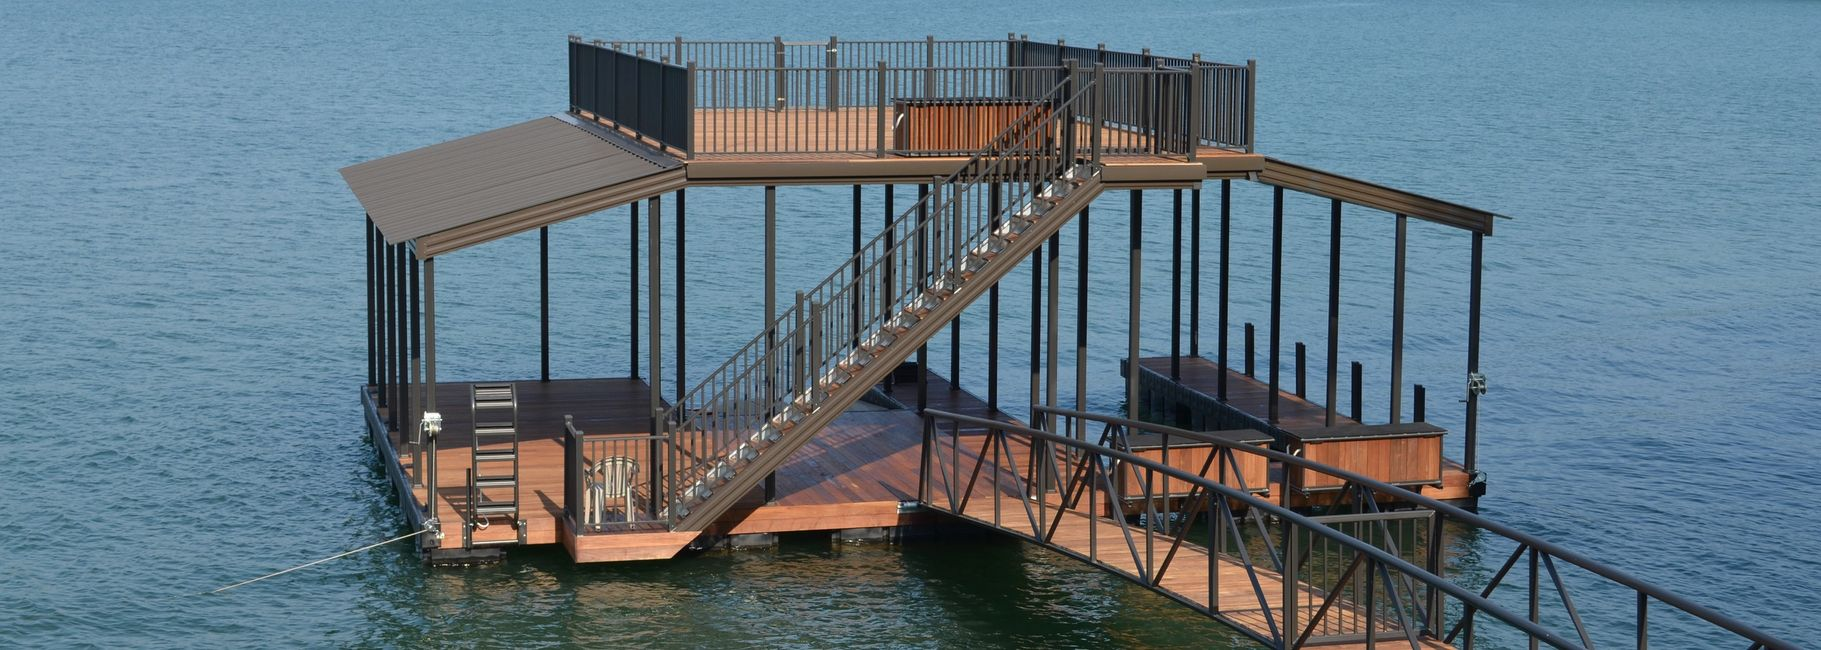 Wahoo custom dock with walk on top deck and arched gangway - all decking is ipe brazilian hardwood